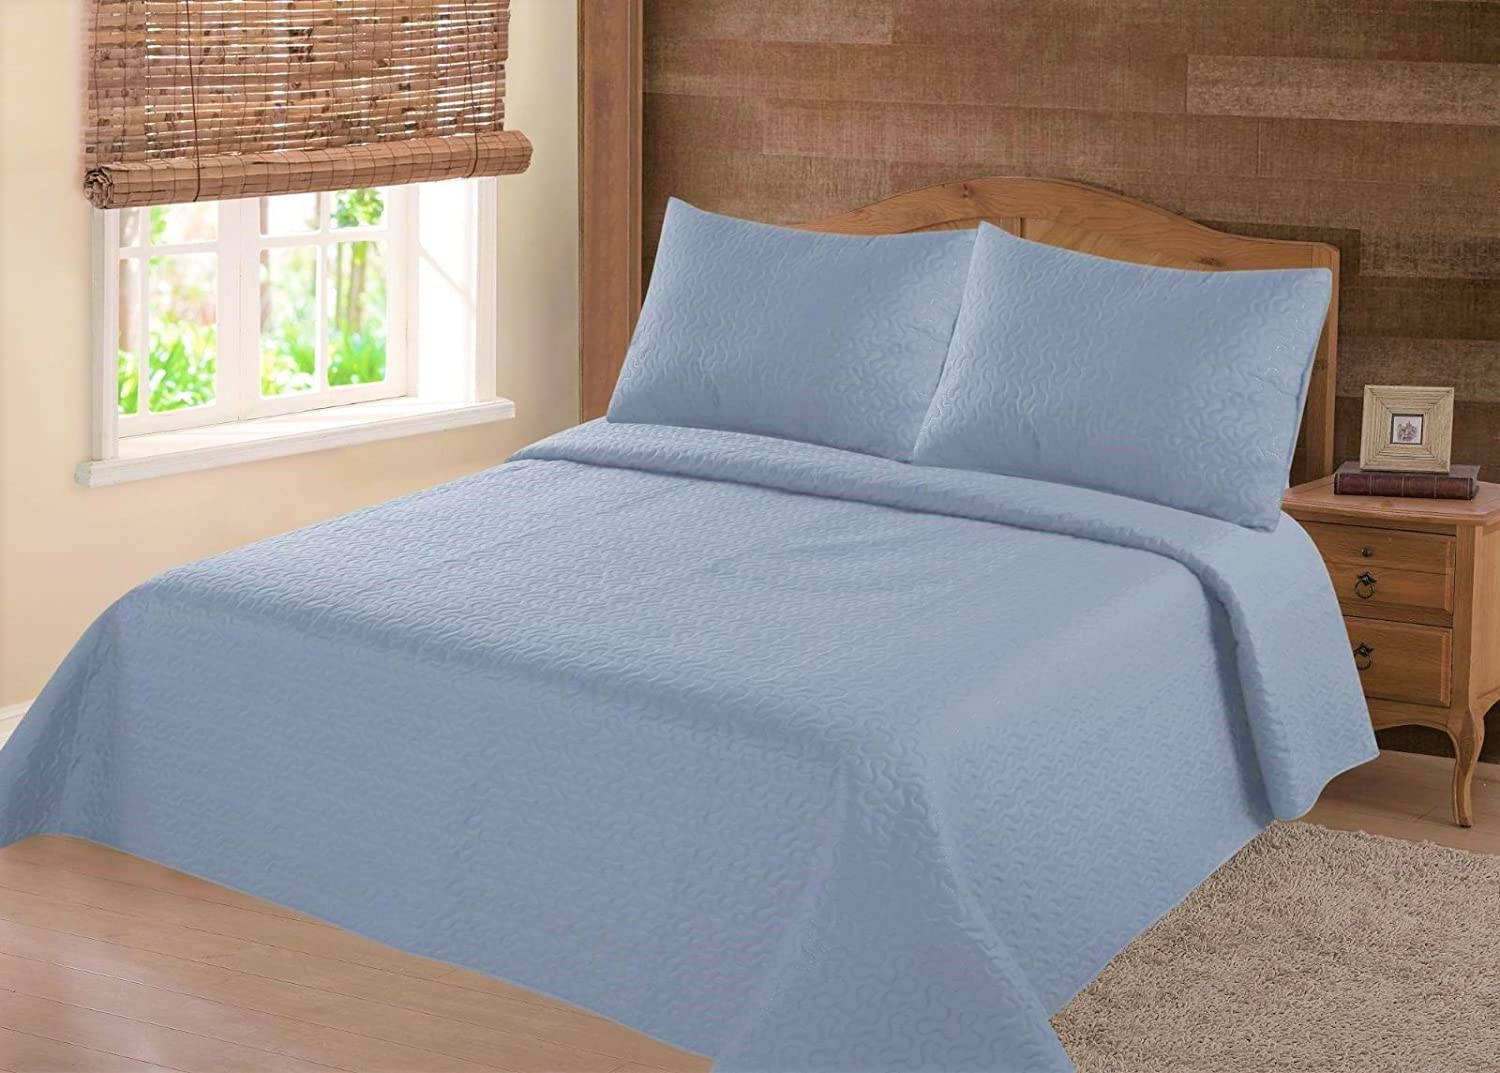 GorgeousHomeLinen (NENA) 2/3-Piece Slate Blue Solid Hypoallergenic Quilt Bedspread Bed Bedding Coverlets Cover Set with Pillow Cases (Full)